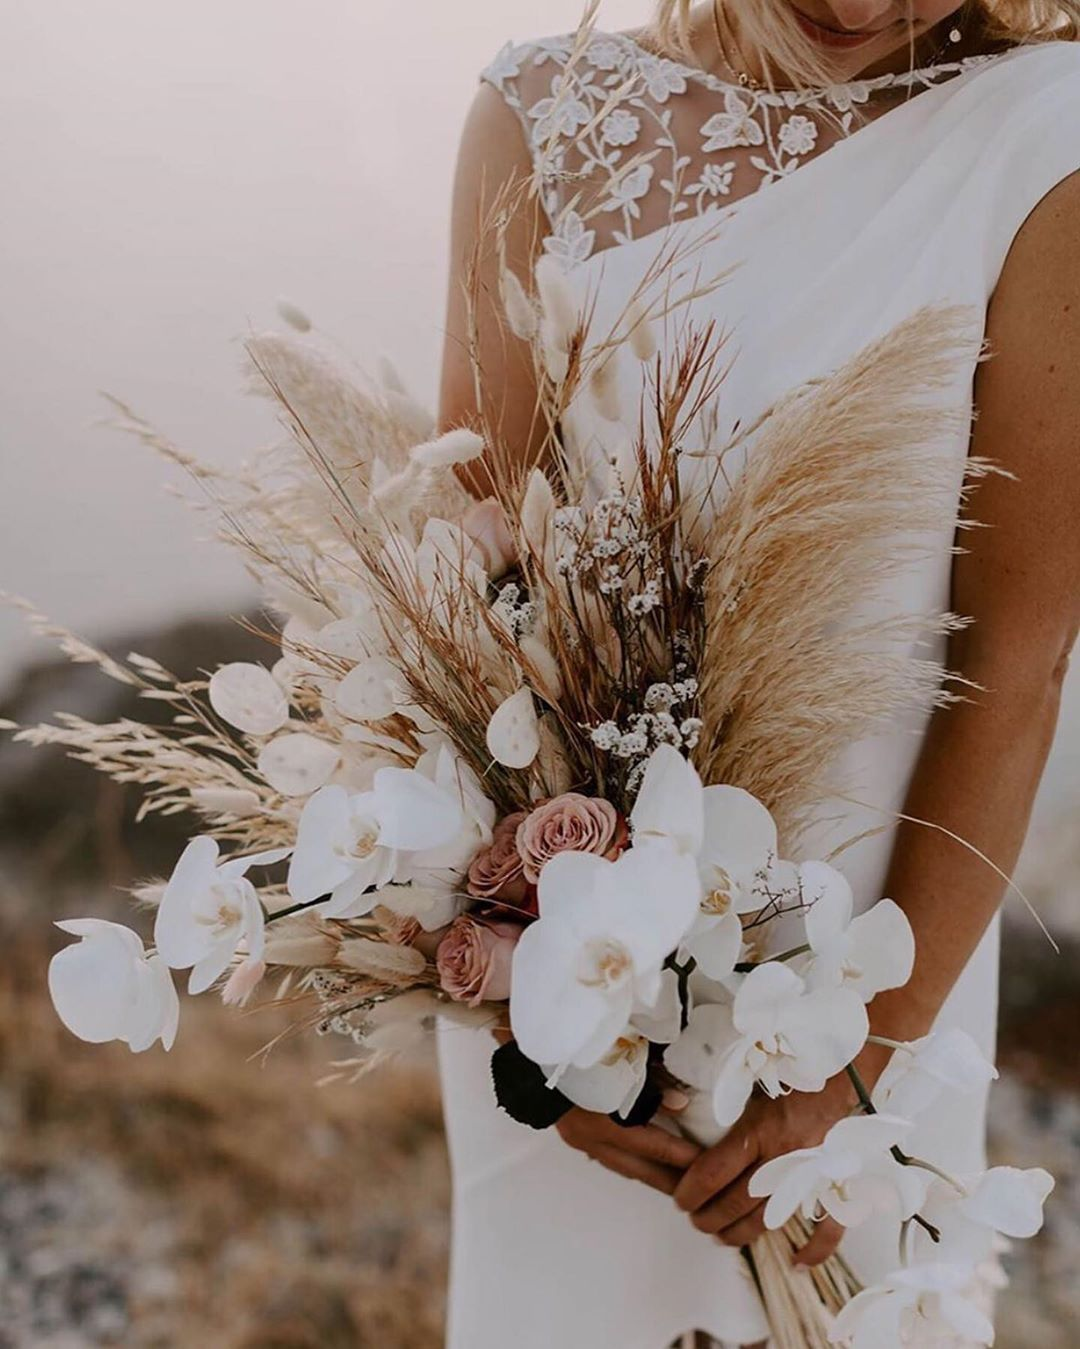 "Maison Rime Arodaky on Instagram: ""Stunning bouquet from @sandnlace_events + @bettyflowerssantorini perfeclty matching our Trilby gown #rimearodakybabe photo @jannekestorm"""